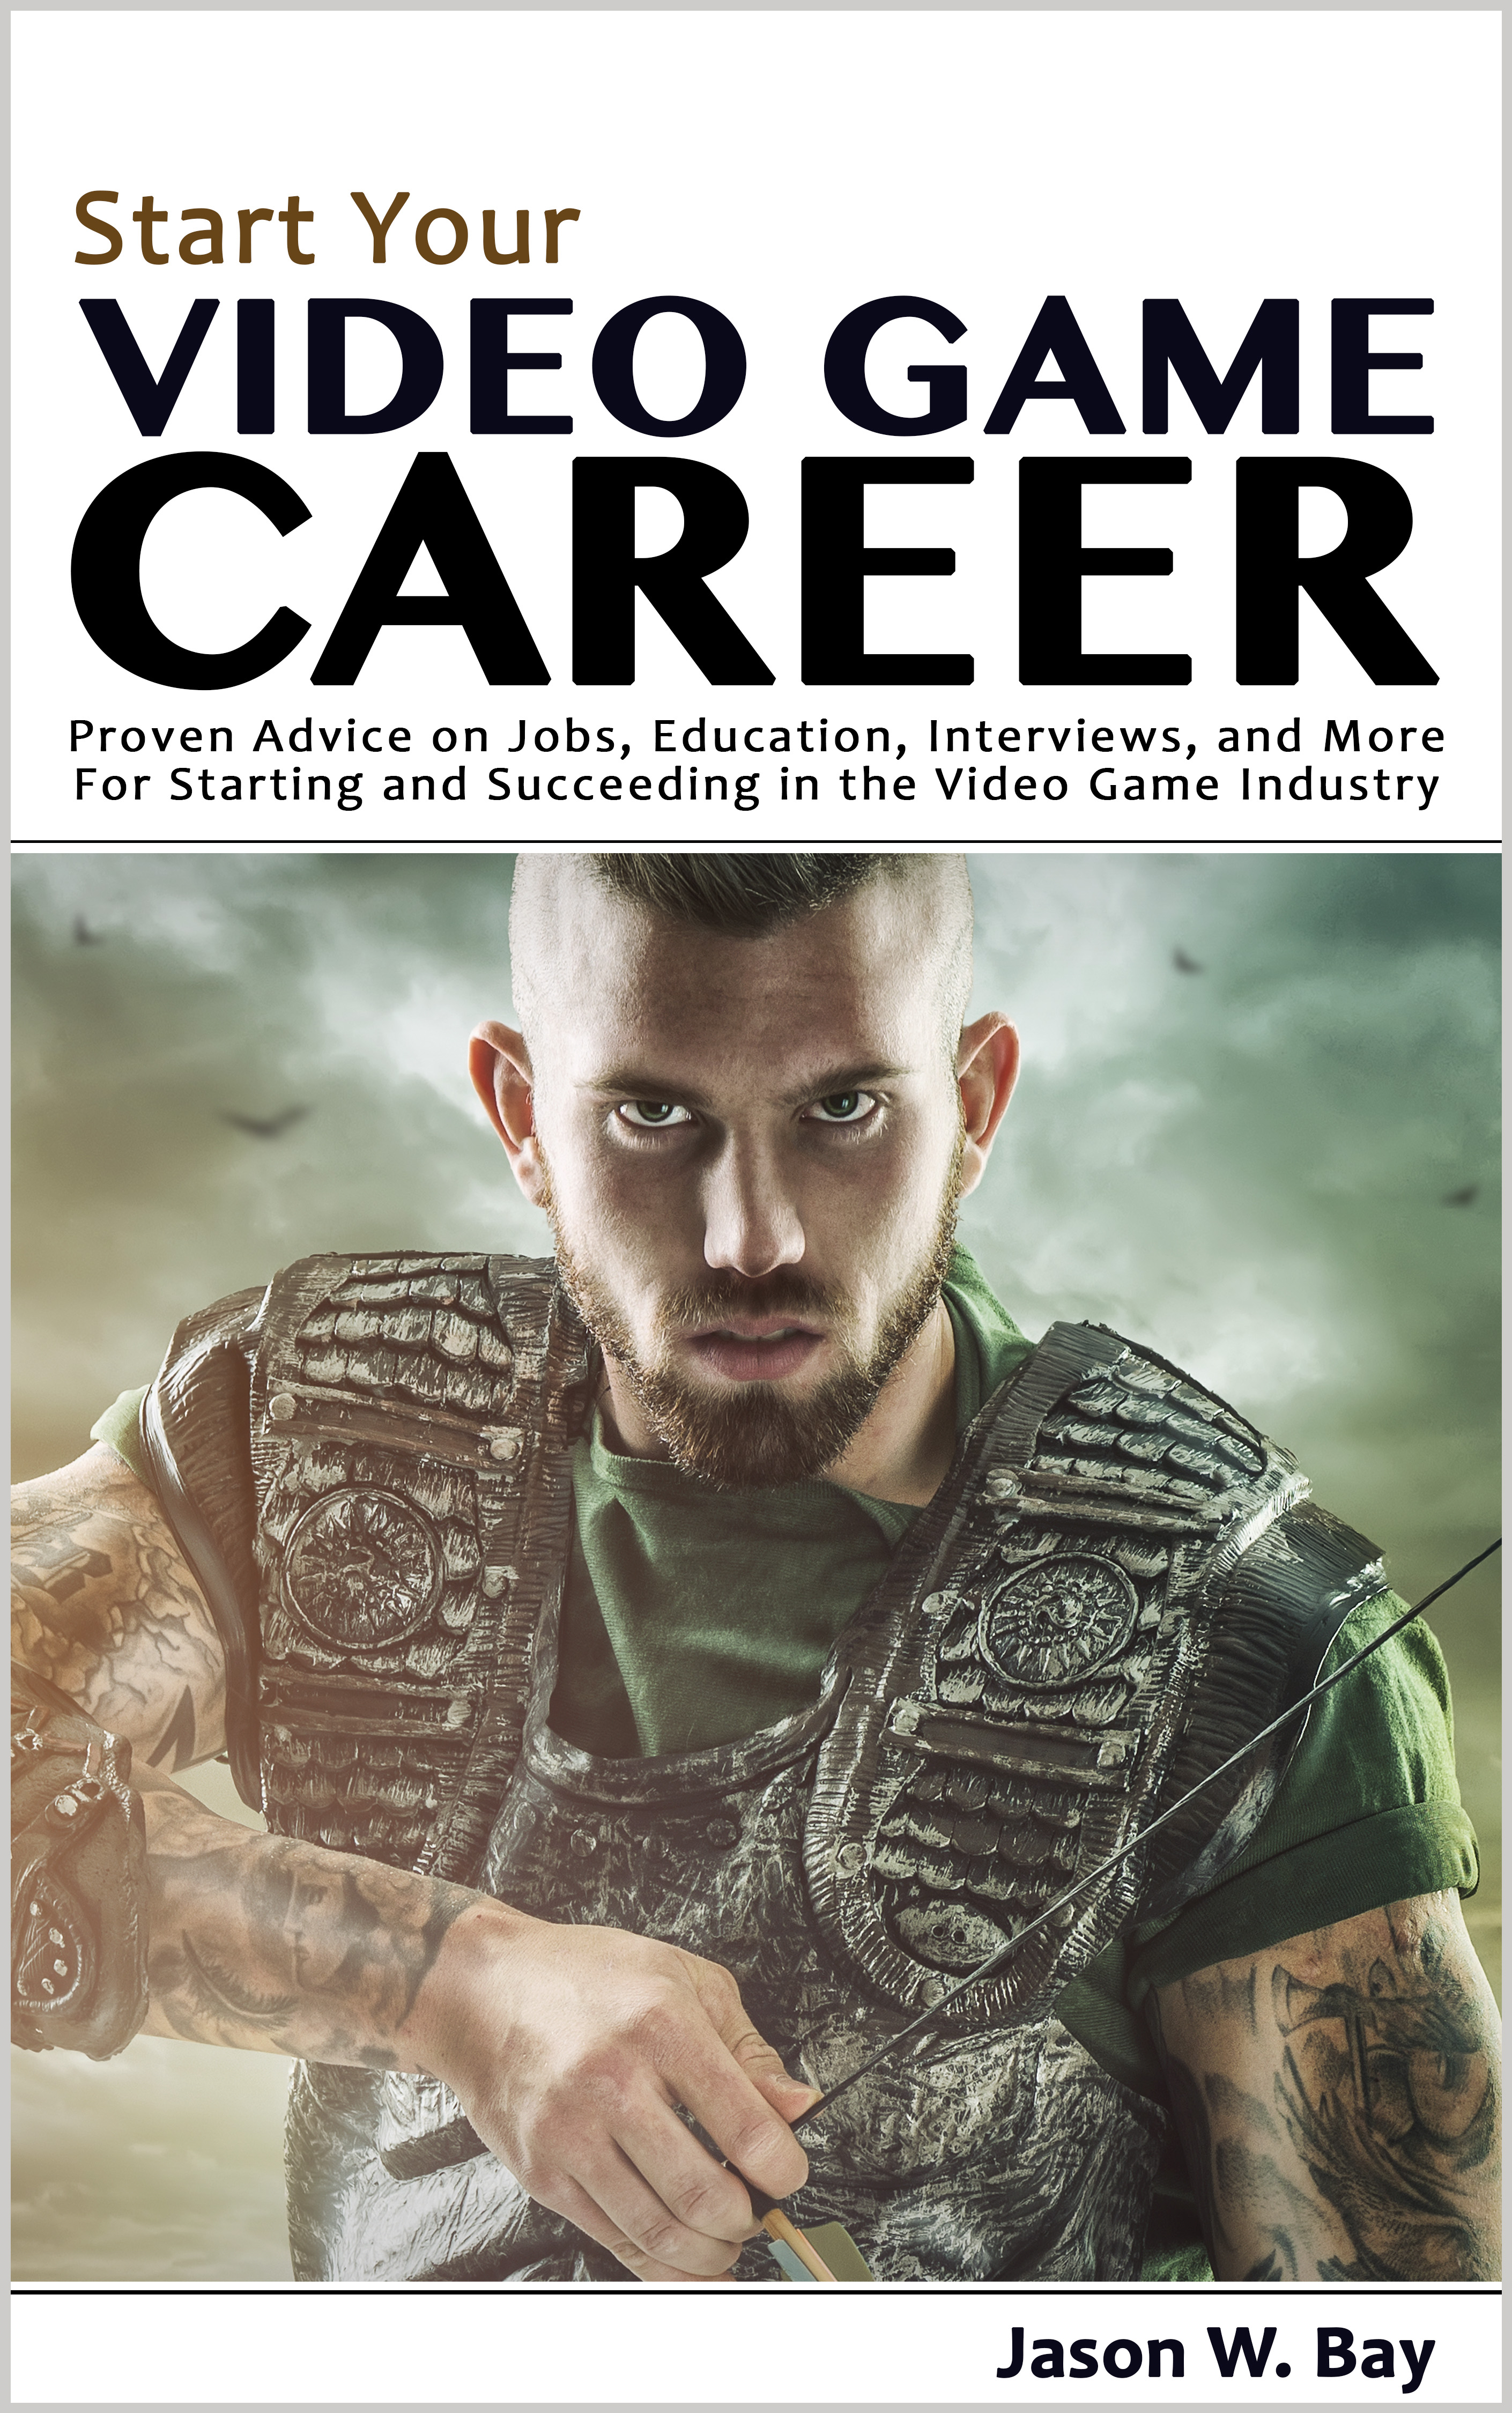 Start Your Video Game Career: Proven Advice on Jobs, Education, Interviews,  and More for Starting and Succeeding in the Video Game Industry, an Ebook